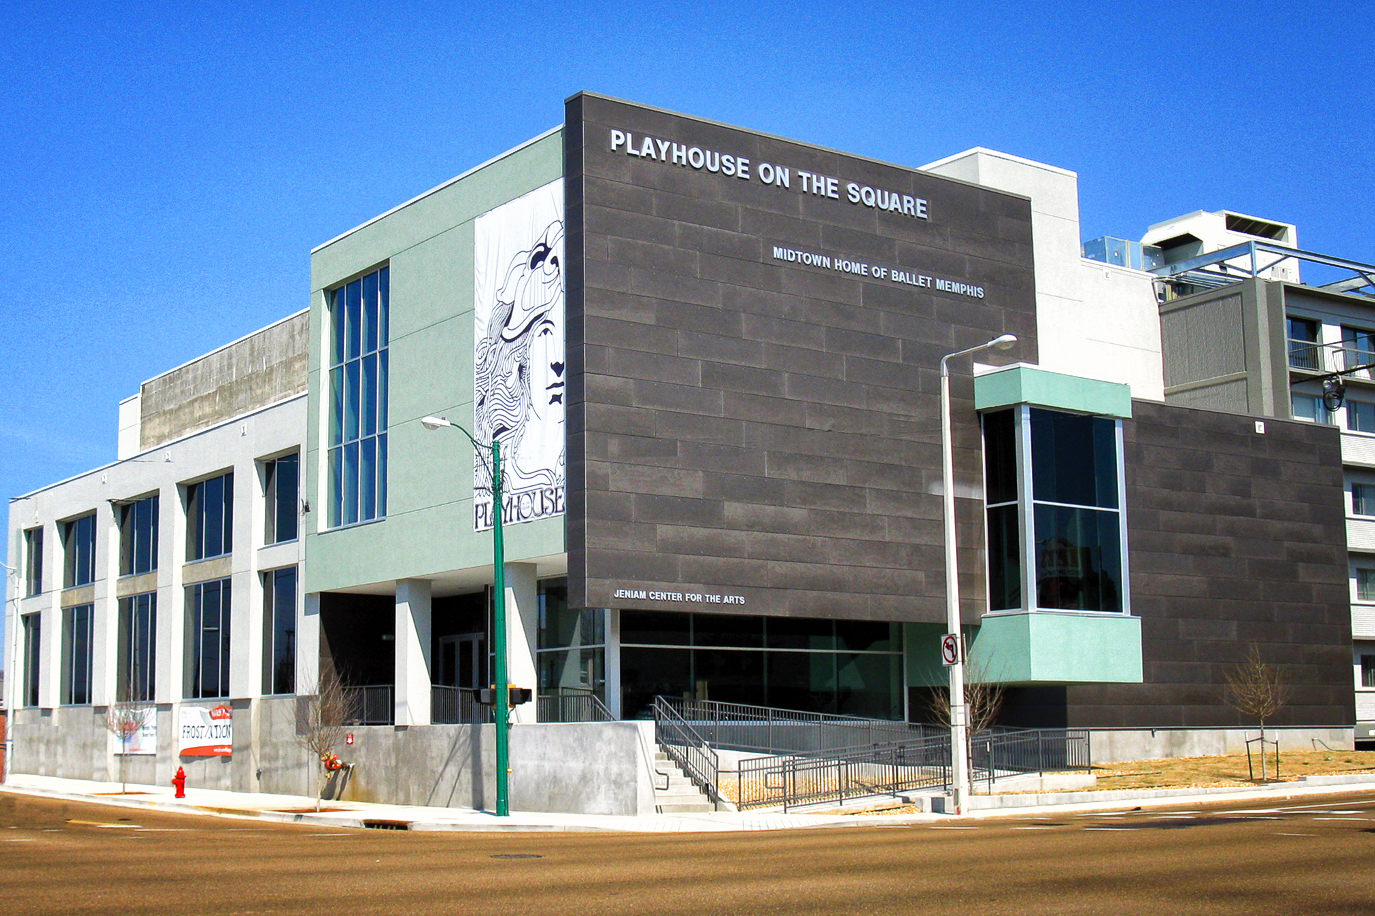 Playhouse+on+the+Square+of+Memphis,+Tennessee+-+Theatre+Auditorium+Design+Construction-3.jpg